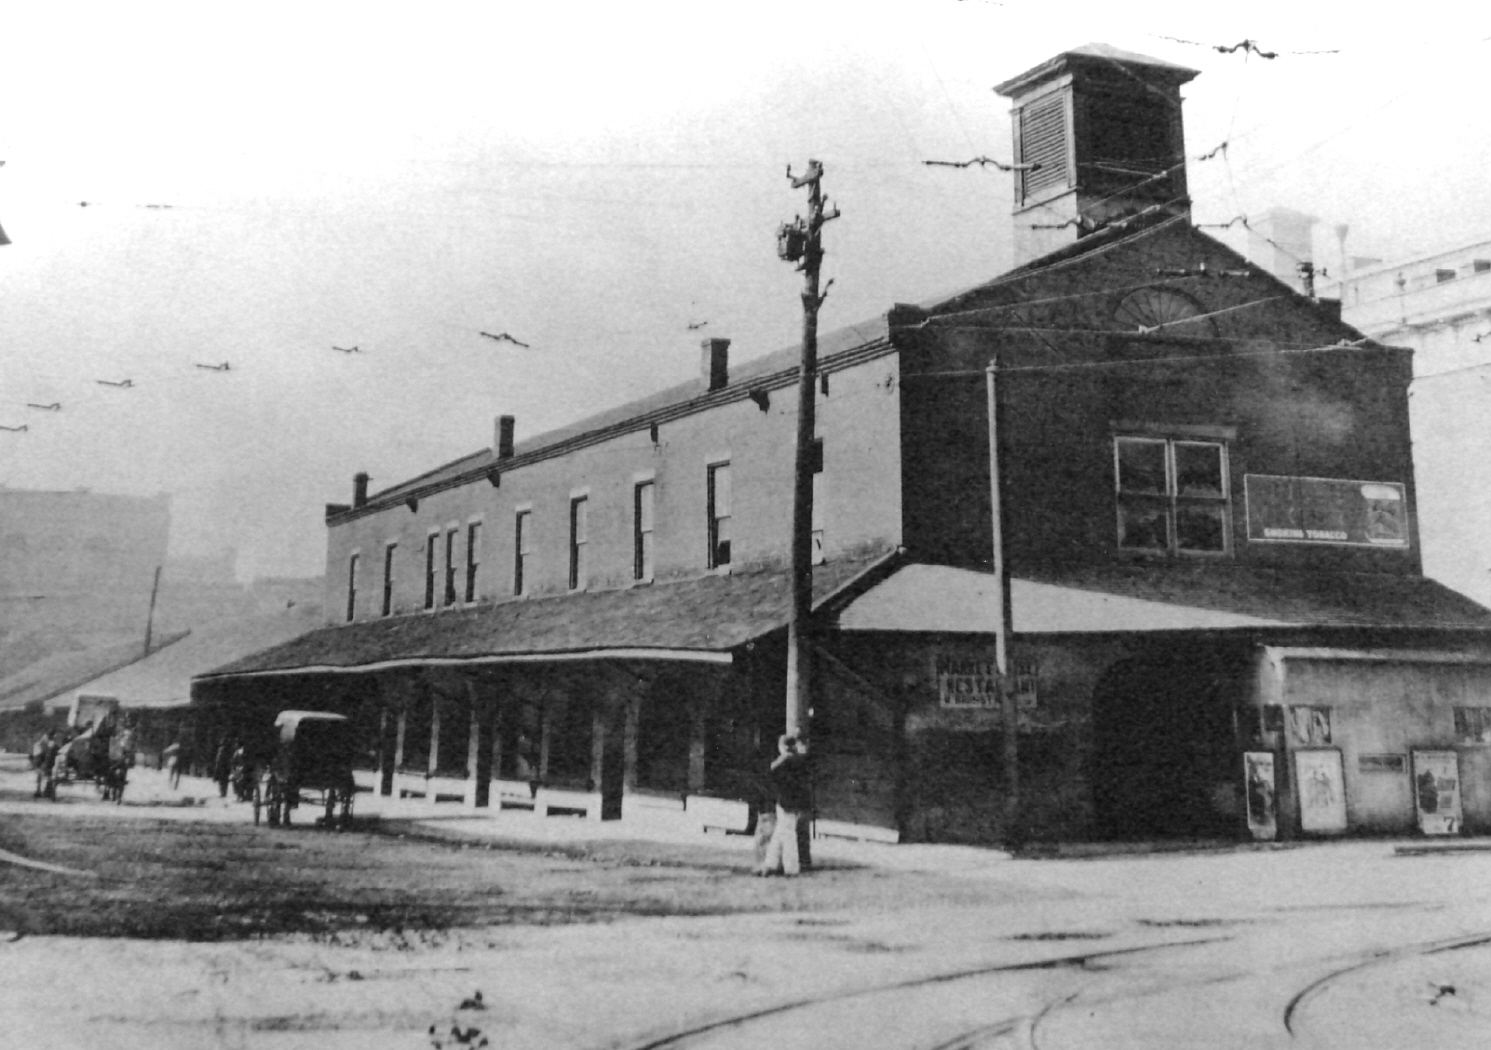 A turn-of-the-century view of the former town market which at that time also included a restaurant. Image from the Wheeling Public Library.